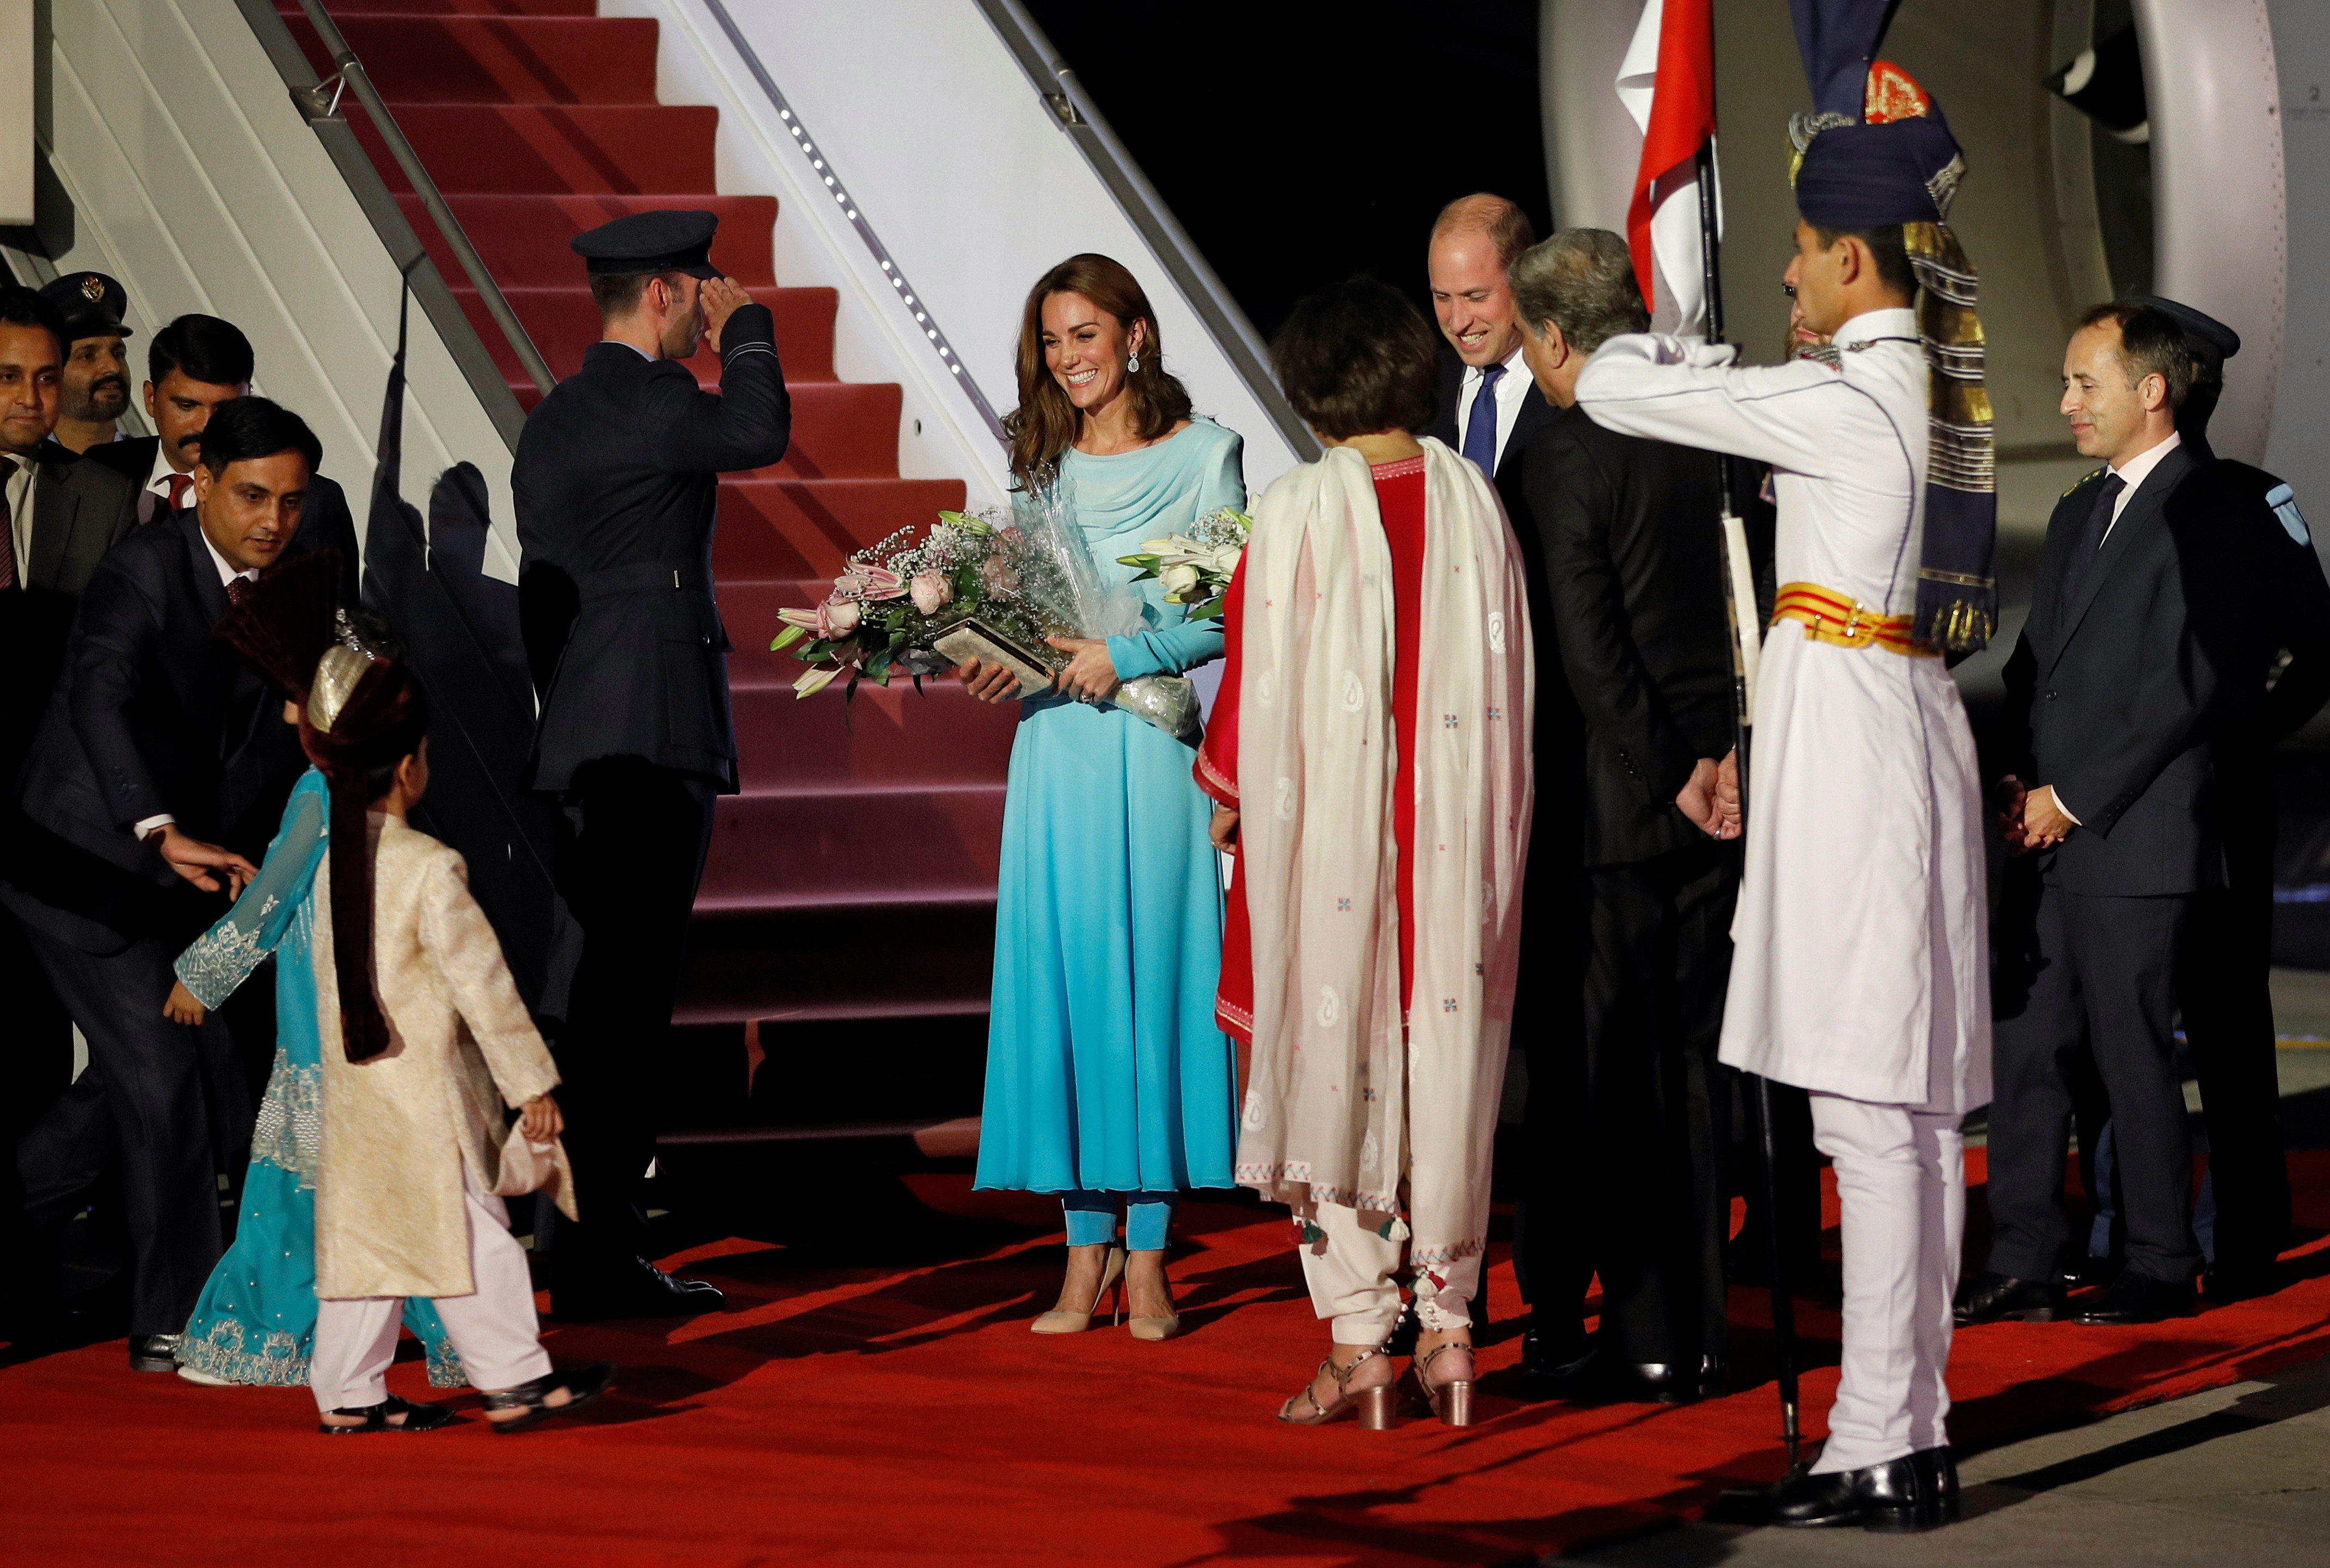 Their visit to the country is the first official one to be made by the royal family since 2006